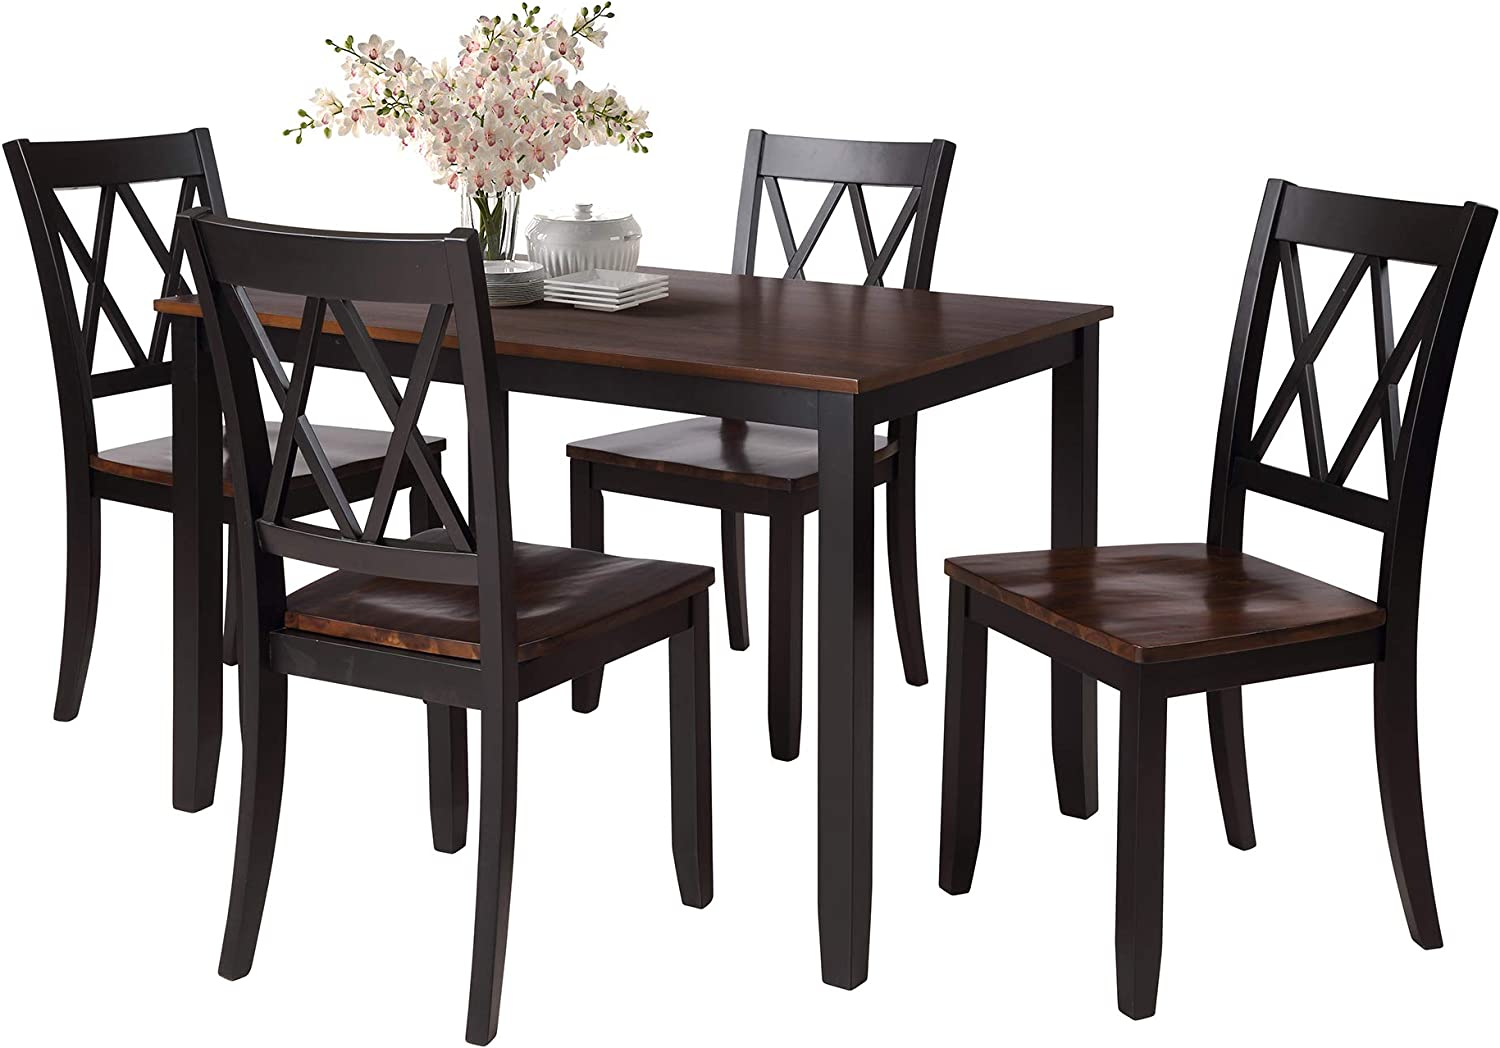 Amazon Com Rhomtree Dining Room Table And Chairs 5pieces Wood Kitchen Dining Set Dinette Set For 4 Person Black Table Chair Sets